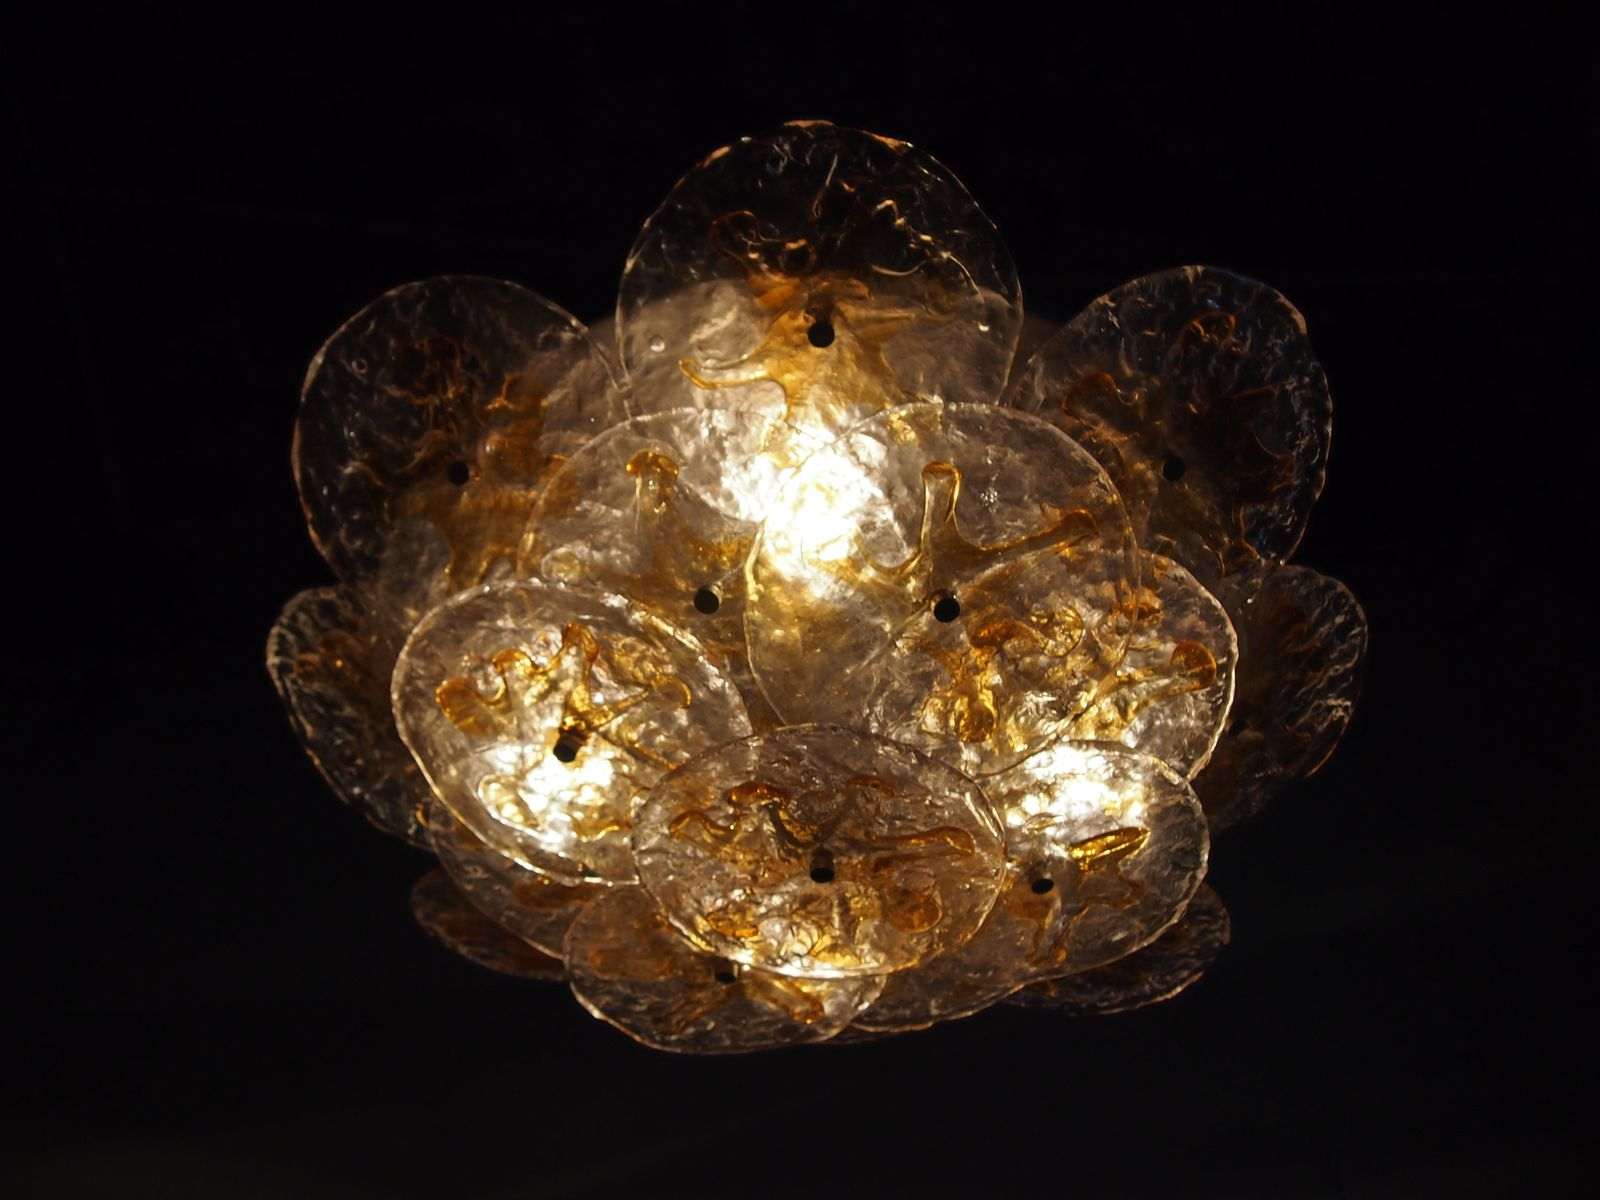 Vintage murano glass chandelier by carlo nason for mazzega for sale vintage murano glass chandelier by carlo nason for mazzega 7 83600 aloadofball Gallery